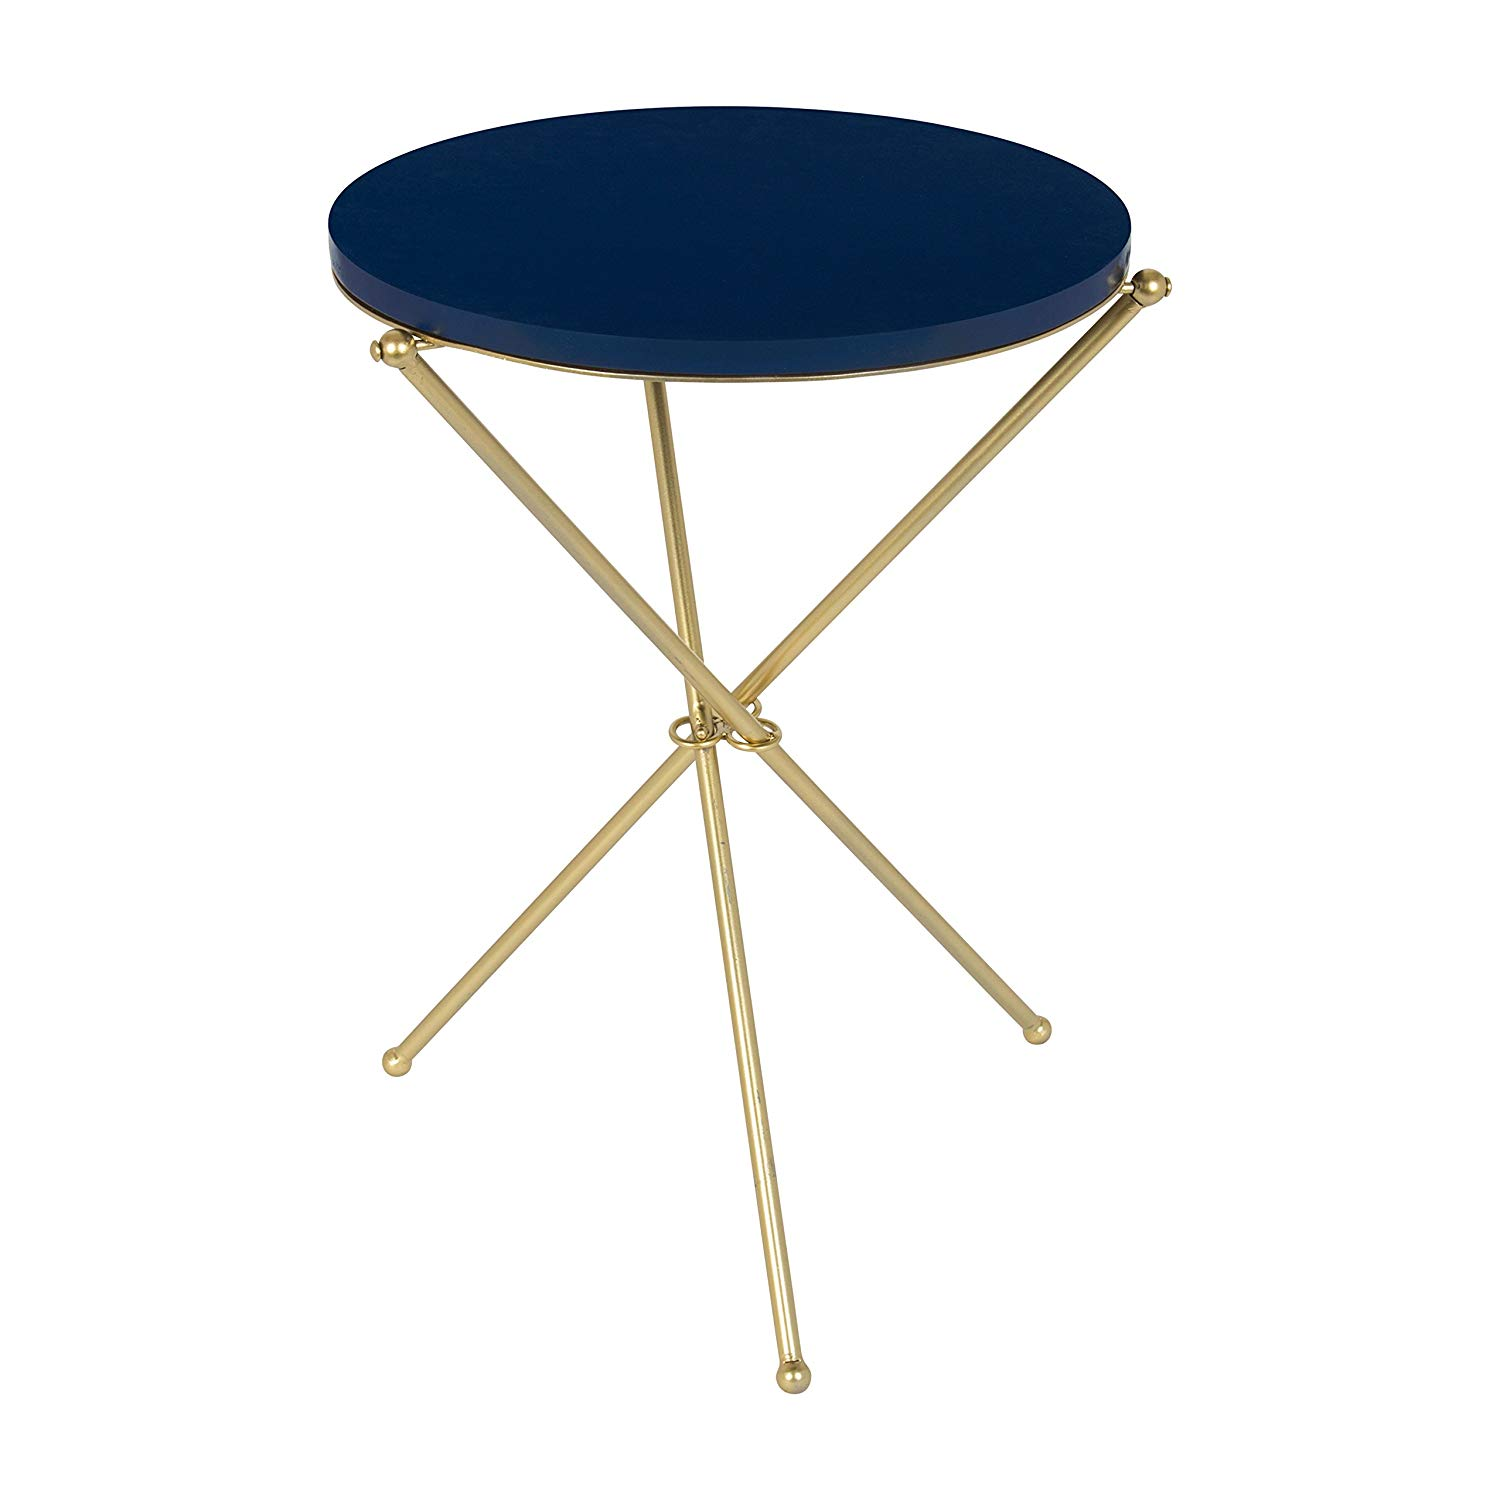 kate and laurel emellyn modern luxe folding side accent painted metal table with round wooden top tripod legs navy blue gold inch diameter topper patterns pieces for shelves end